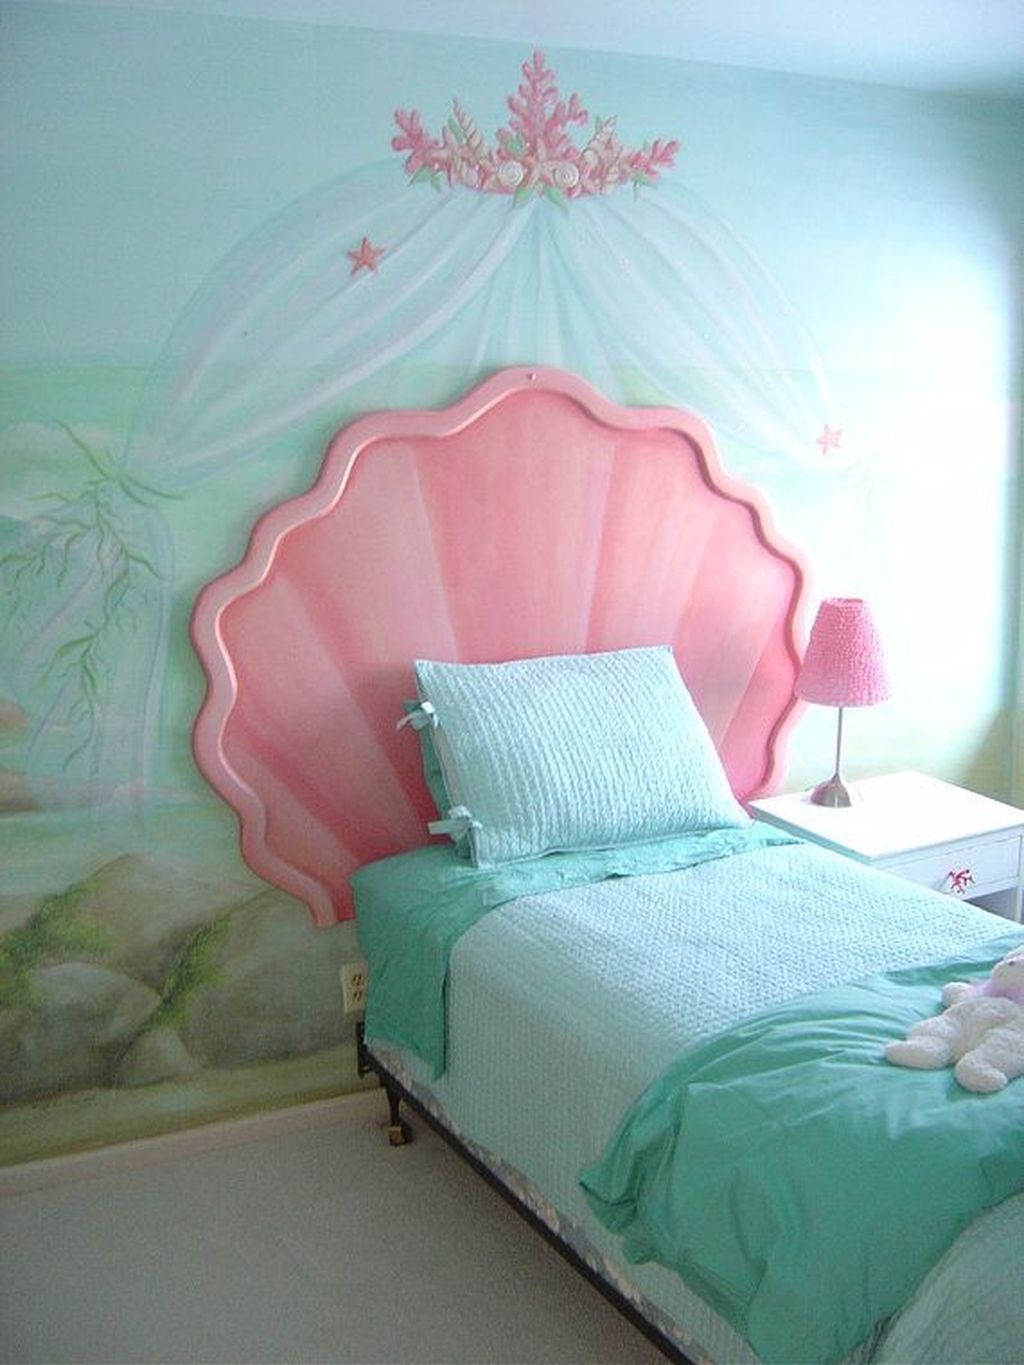 40 Cute And Beautiful Mermaid Themes Bedroom Ideas For Your Children images